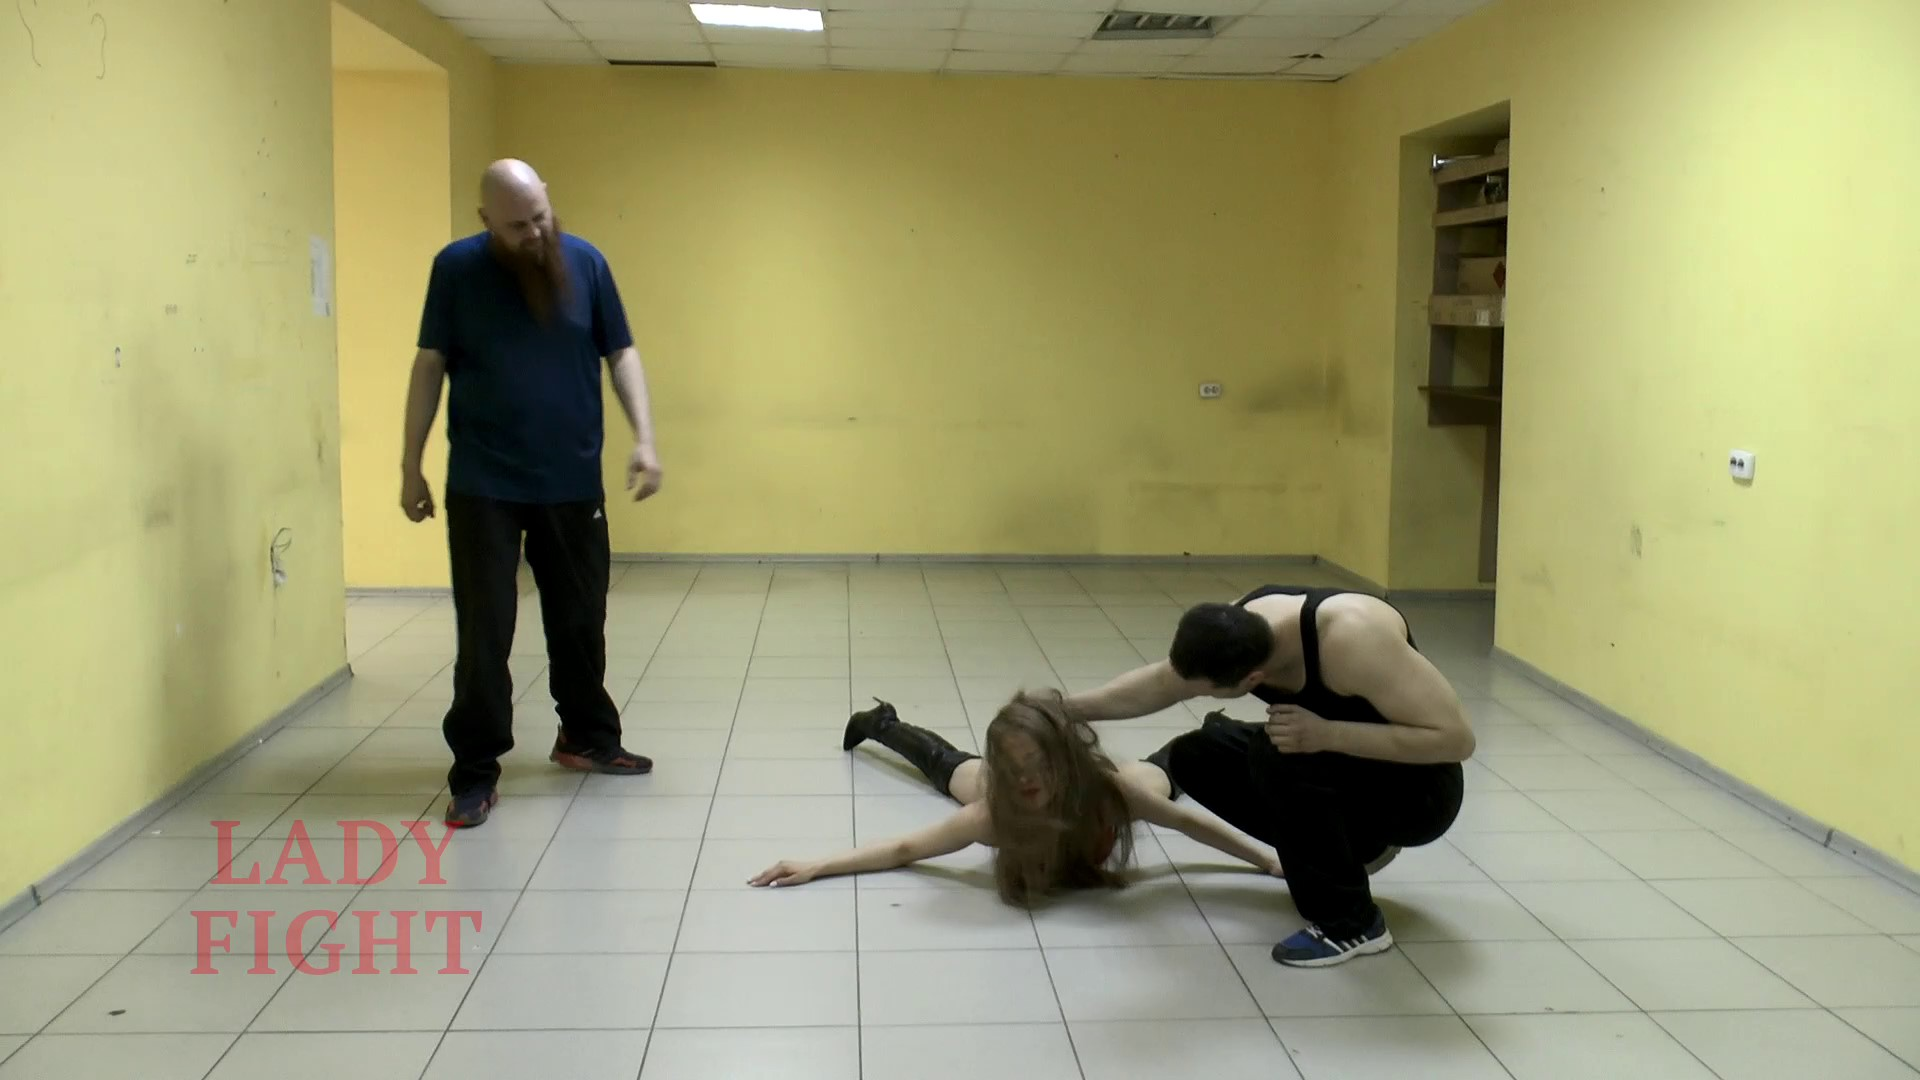 LADYFIGHT-Deadly-Wrestling-For-Lora-39